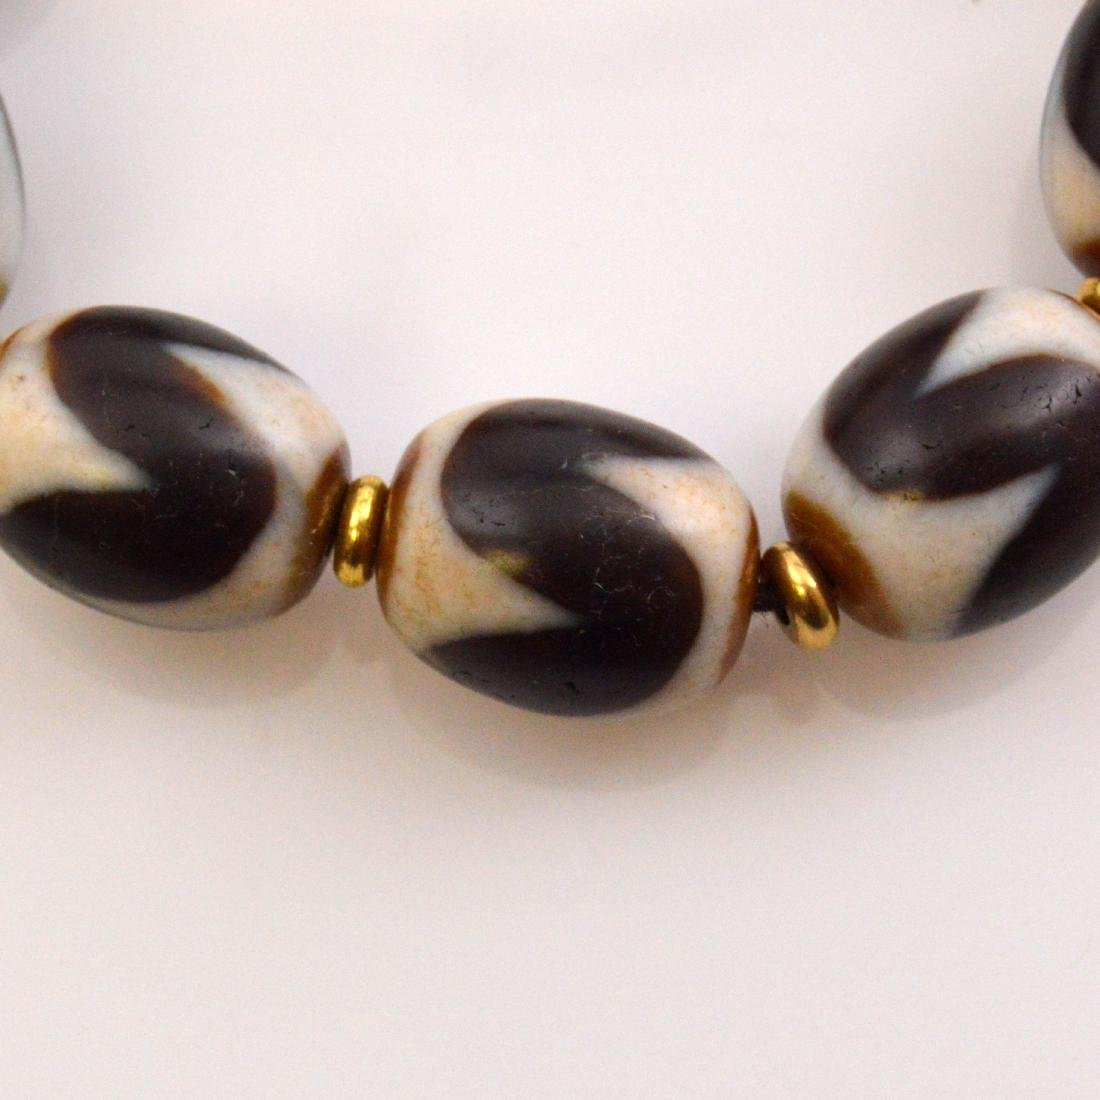 Tiger Tooth Dzi Bead Bracelet - 2